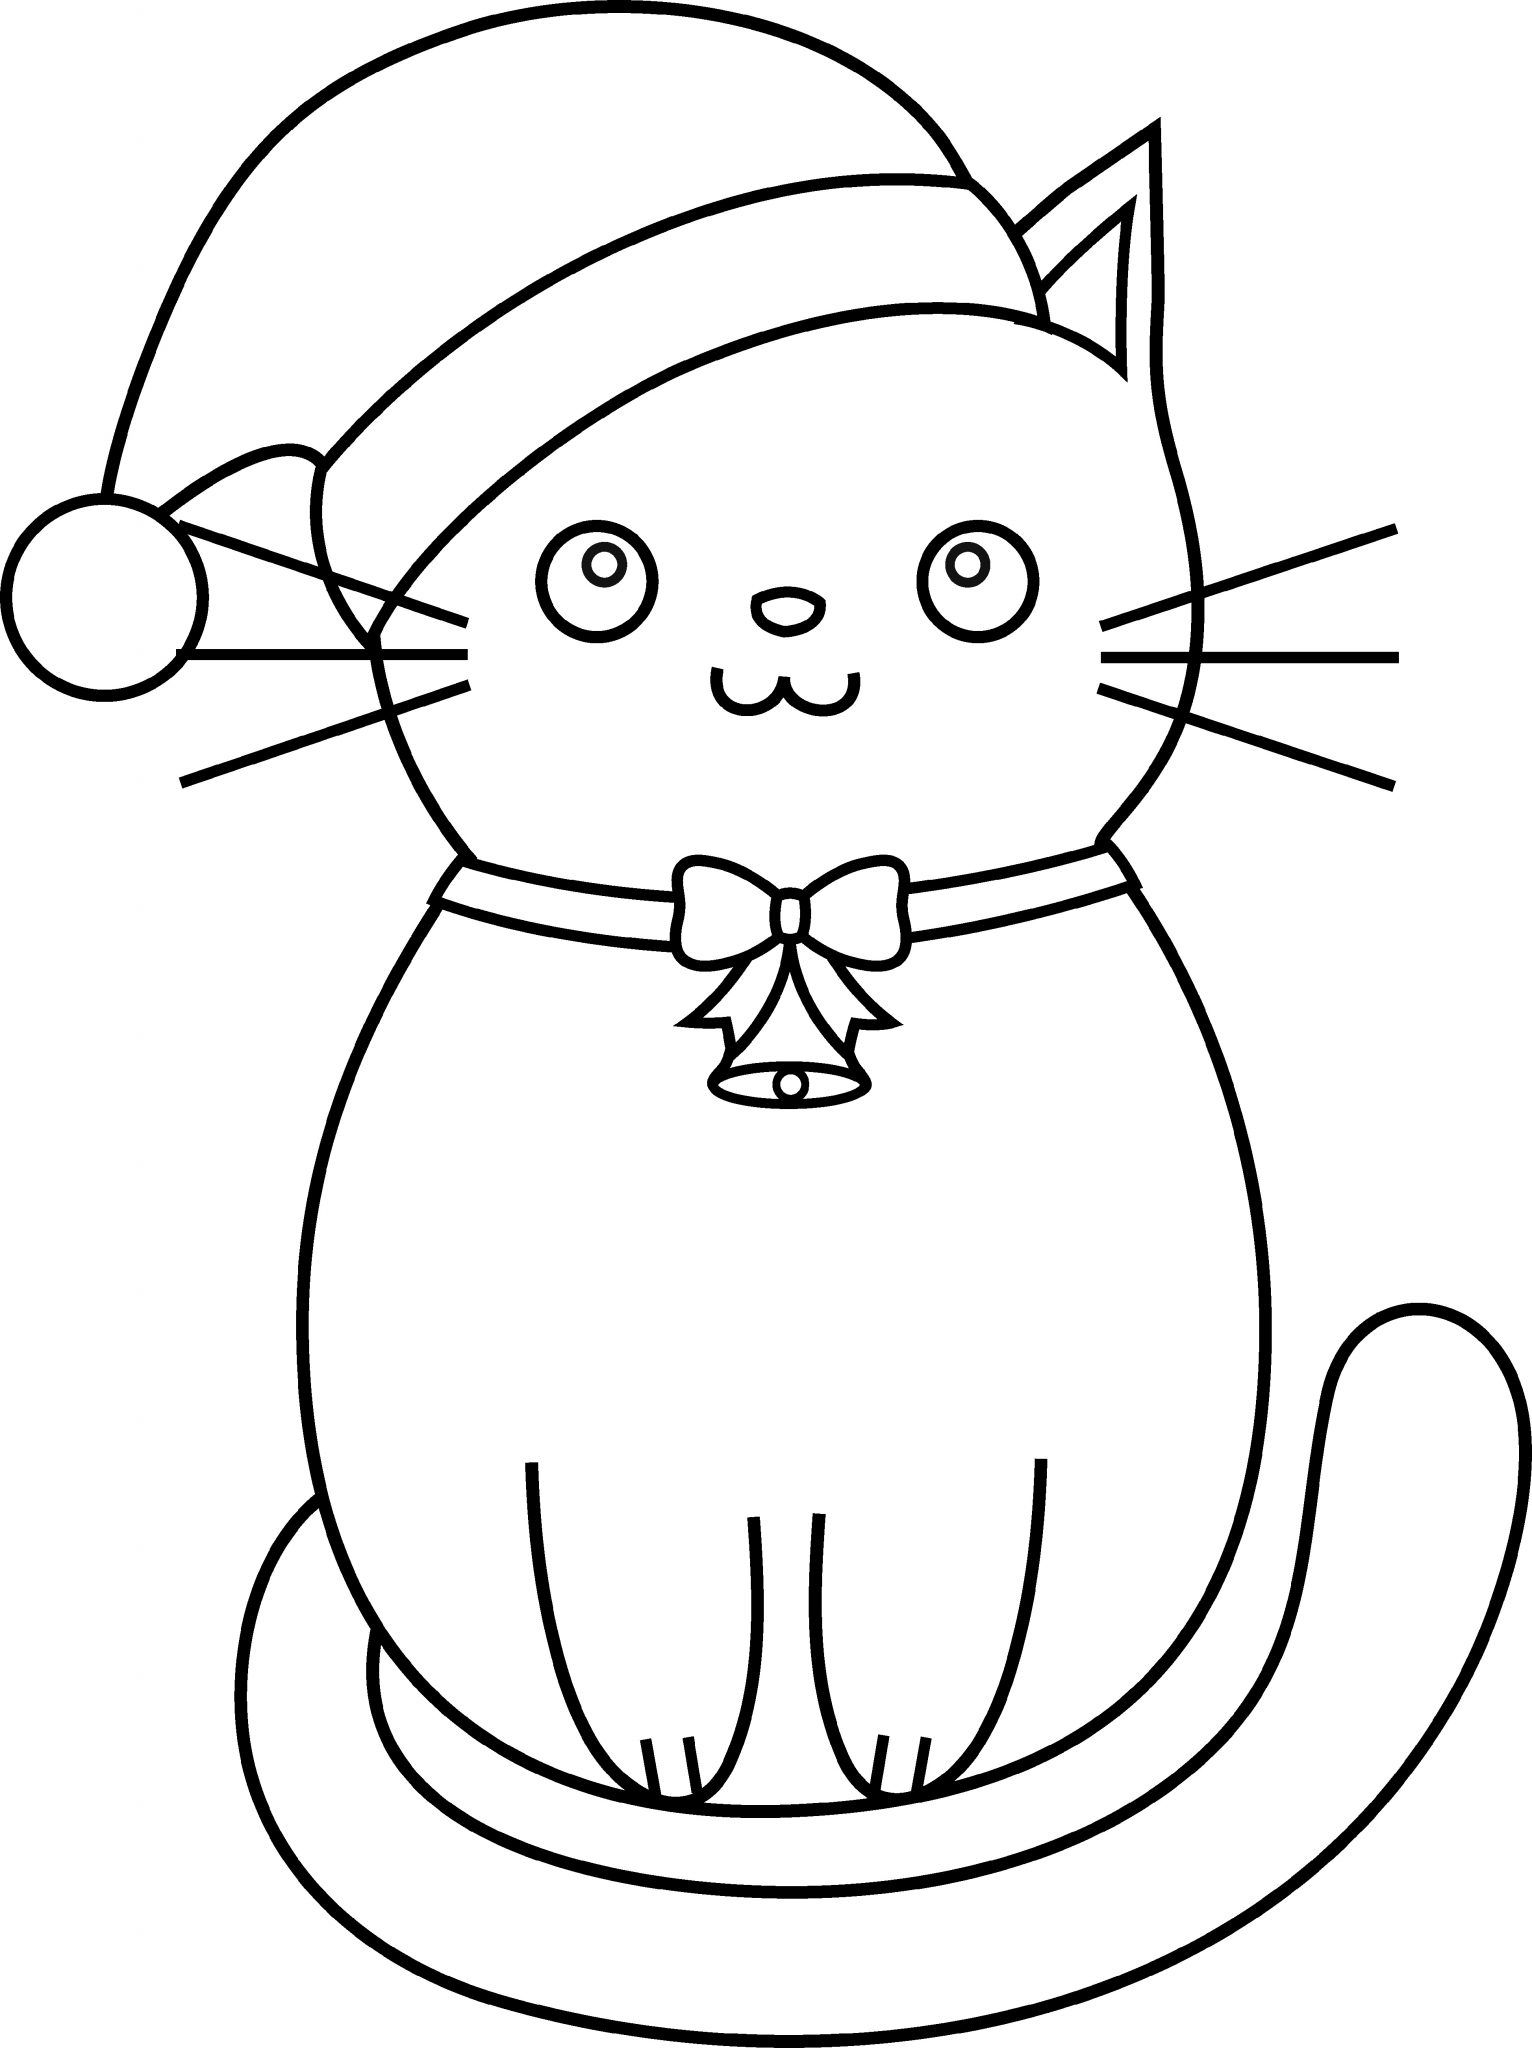 200 Free Coloring Pages Ideas In 2021